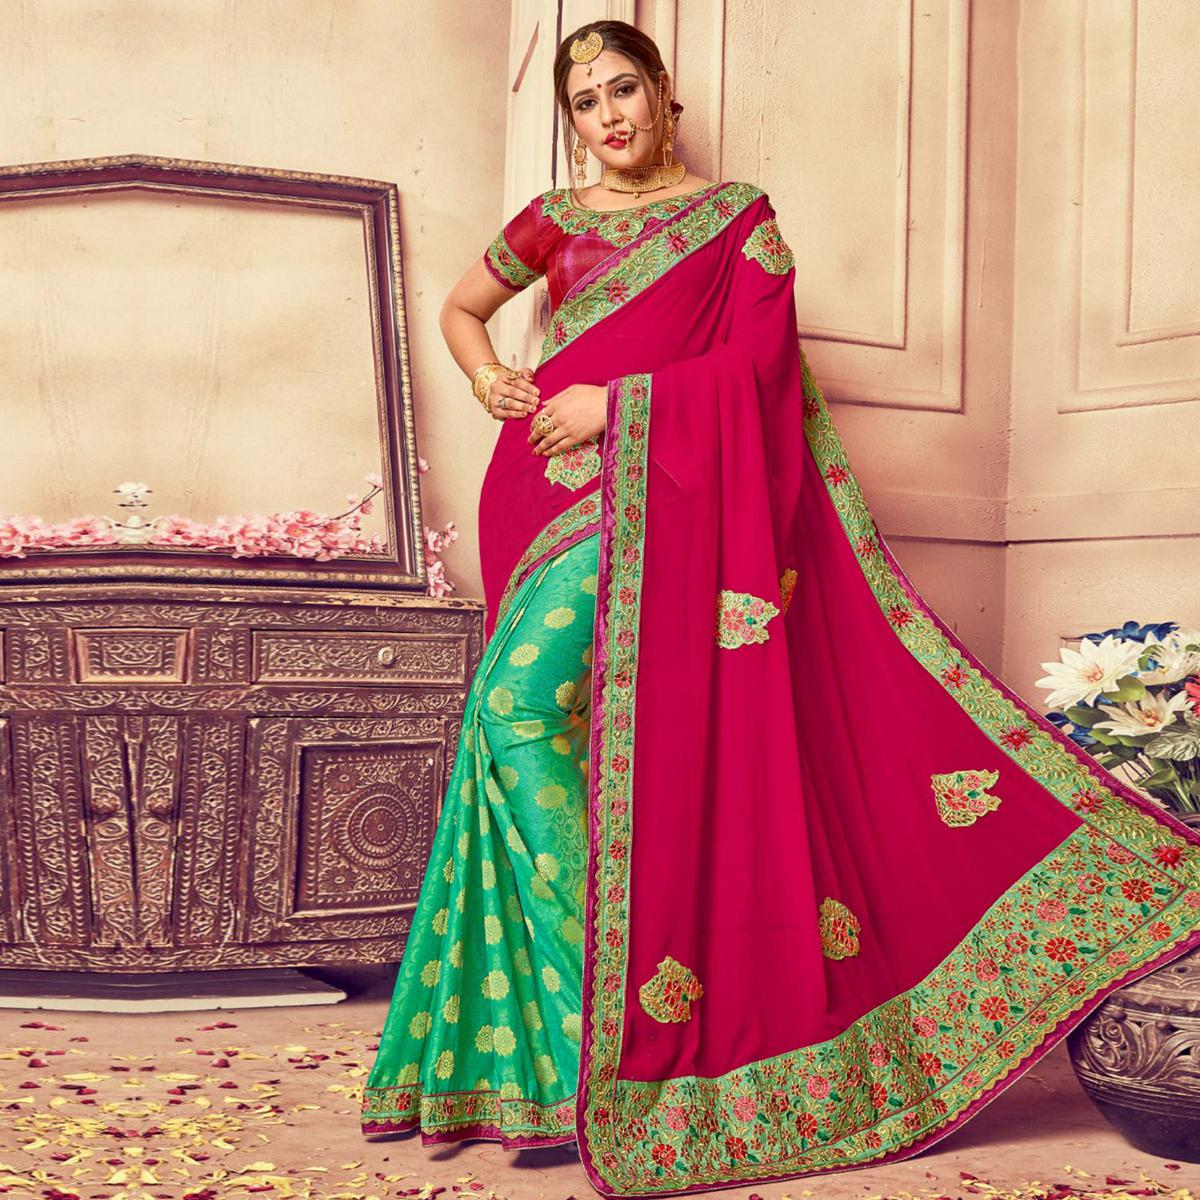 Pleasance Magenta-Green Colored Party Wear Embroidered Georgette-Jacquard Silk Saree